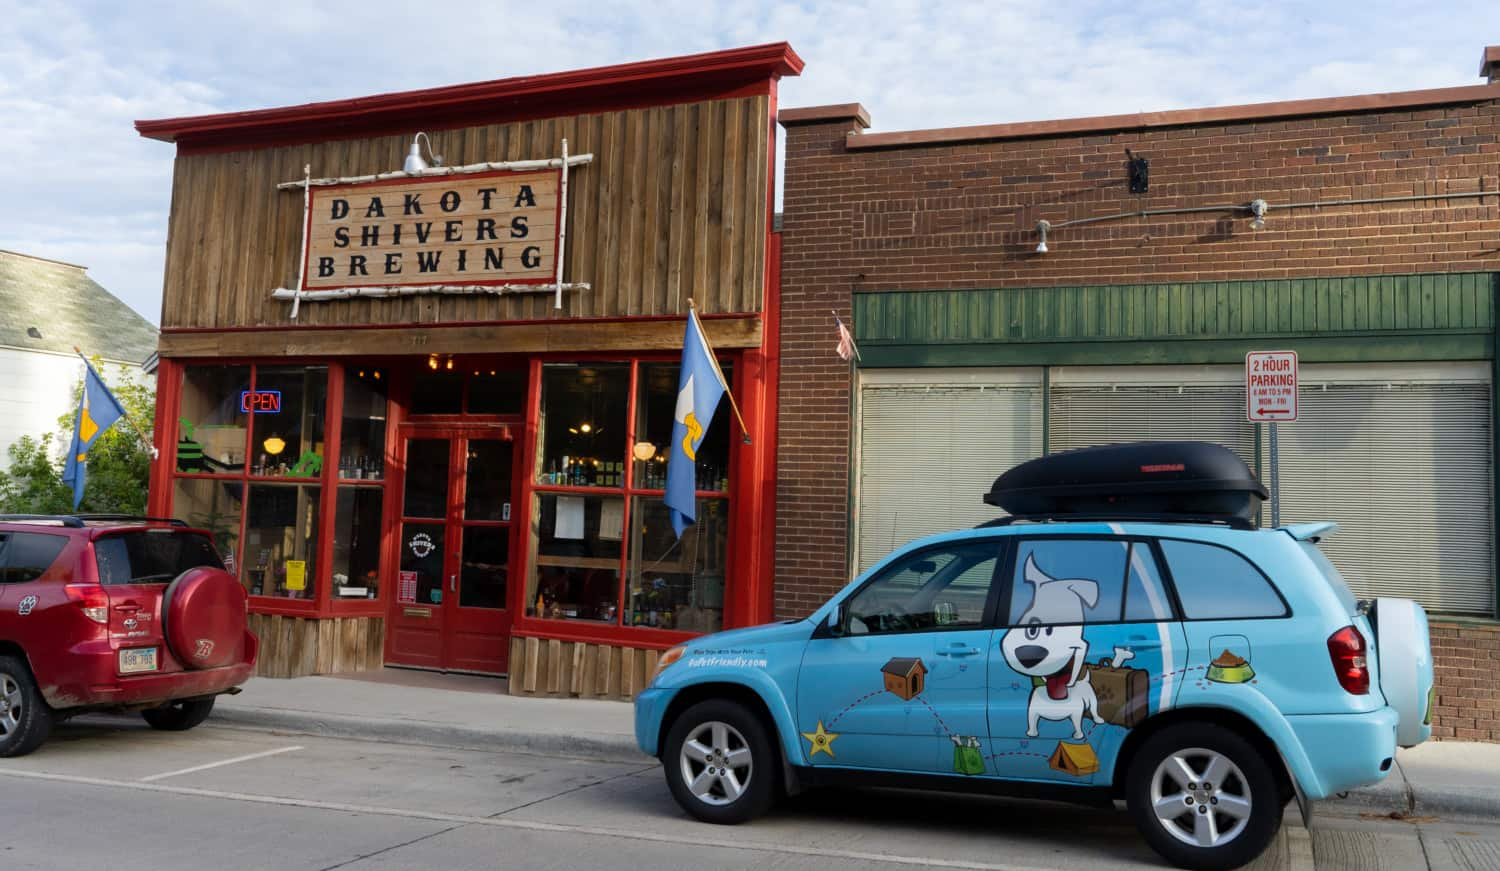 The GoPetFriendly.com RAV4 parked outside Dakota Shivers Brewing Company in Lead, SD